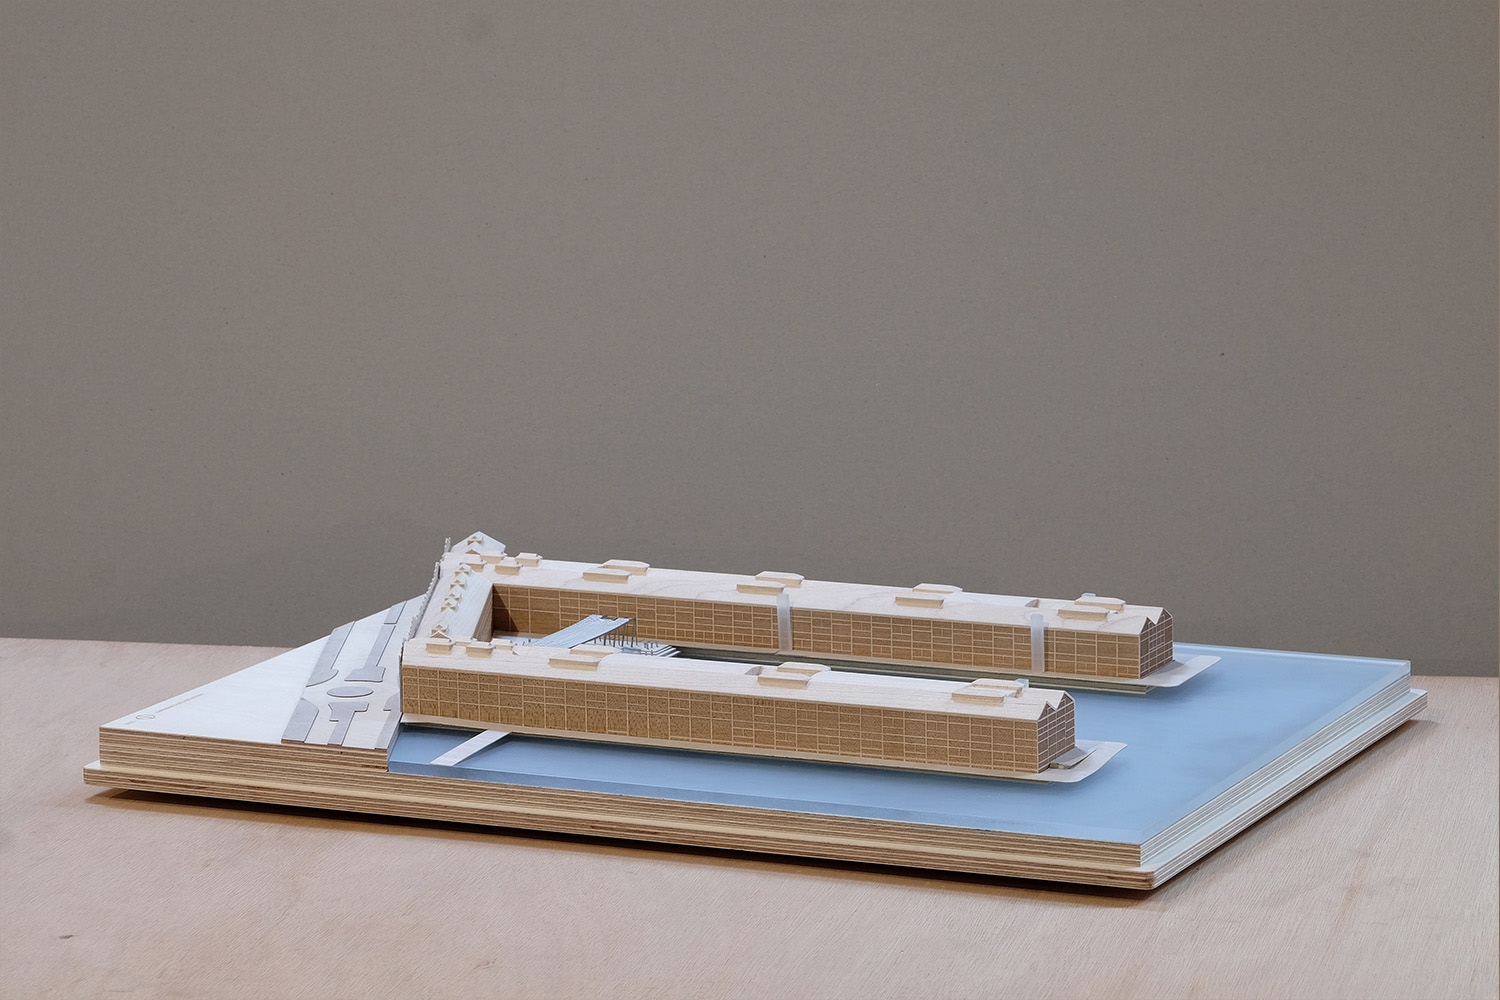 Solid timber and Plywood architectural model